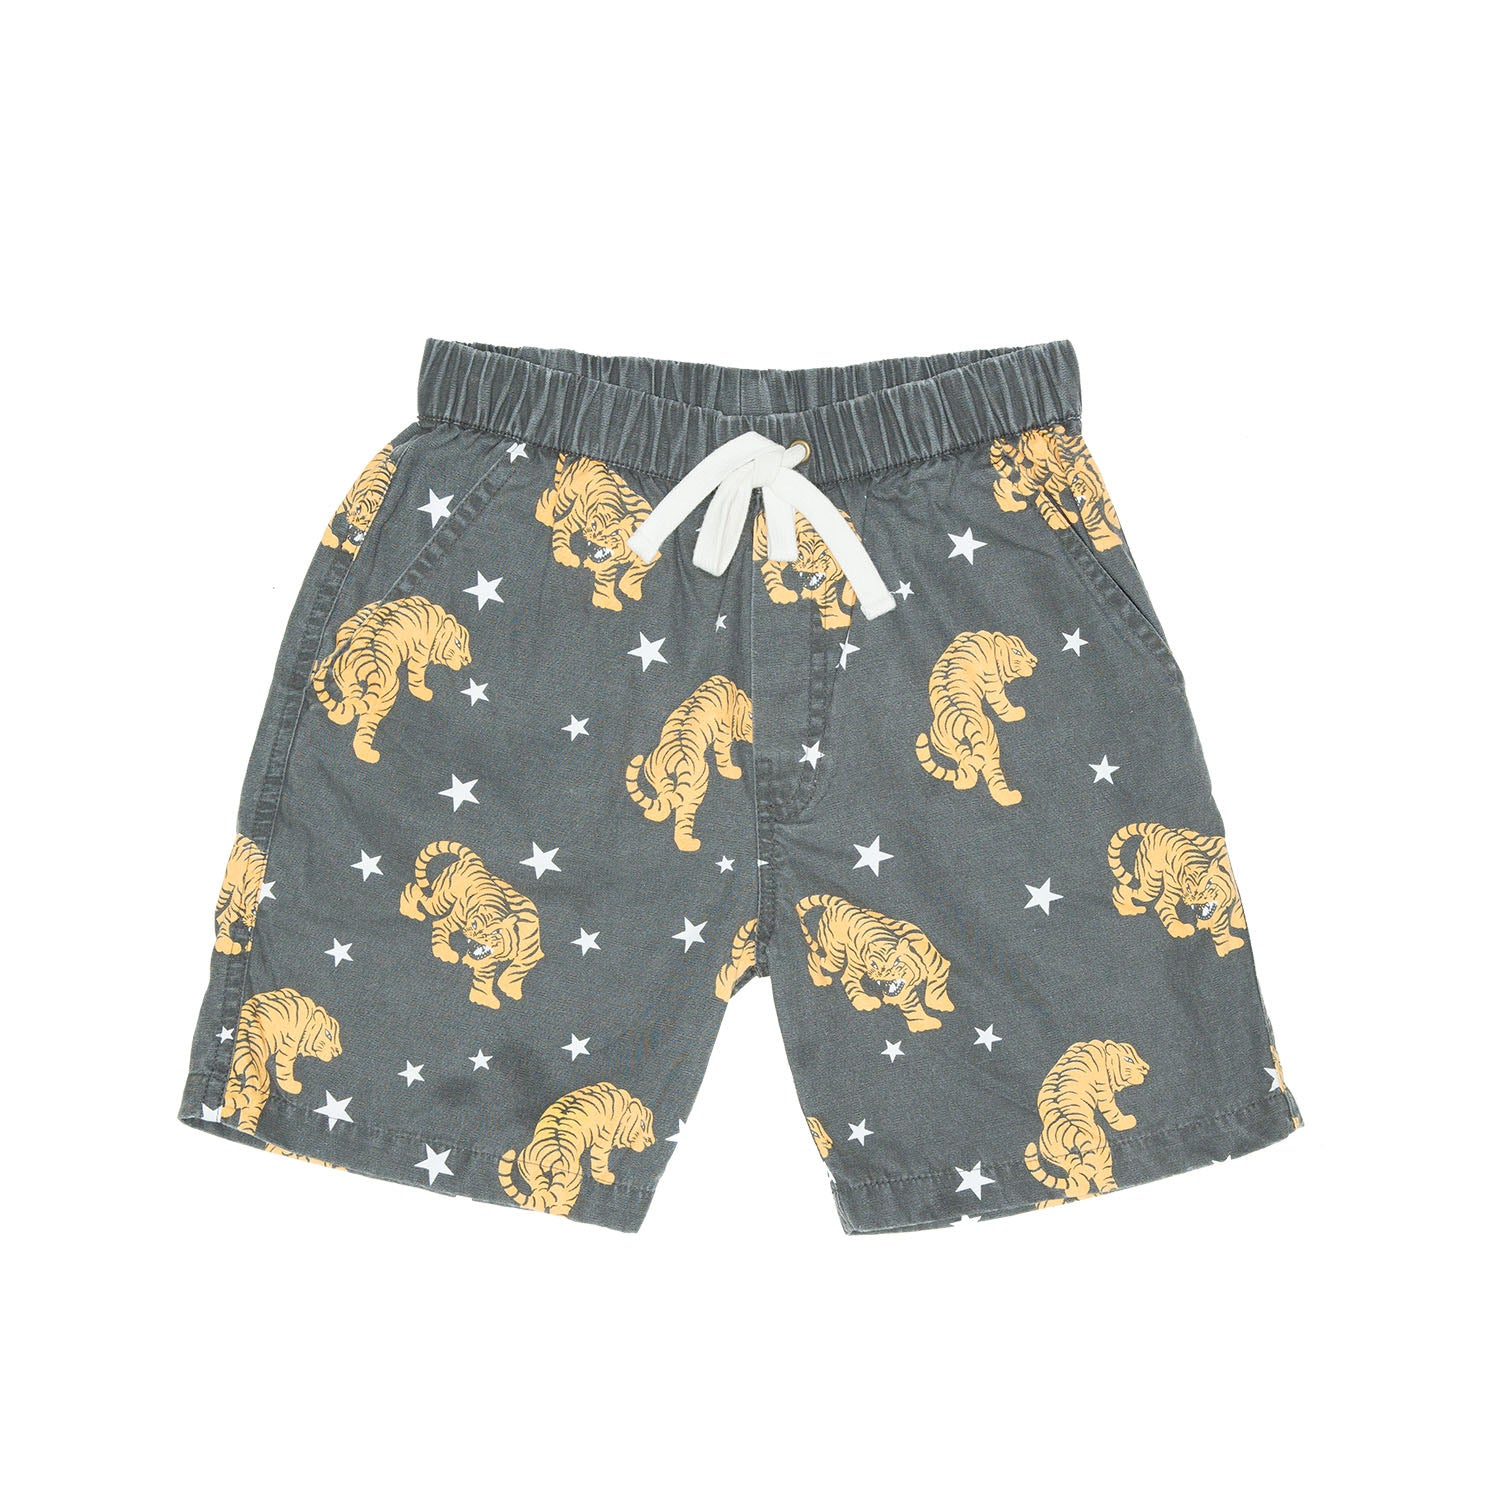 Zuttion - Tiger Star Walk shorts